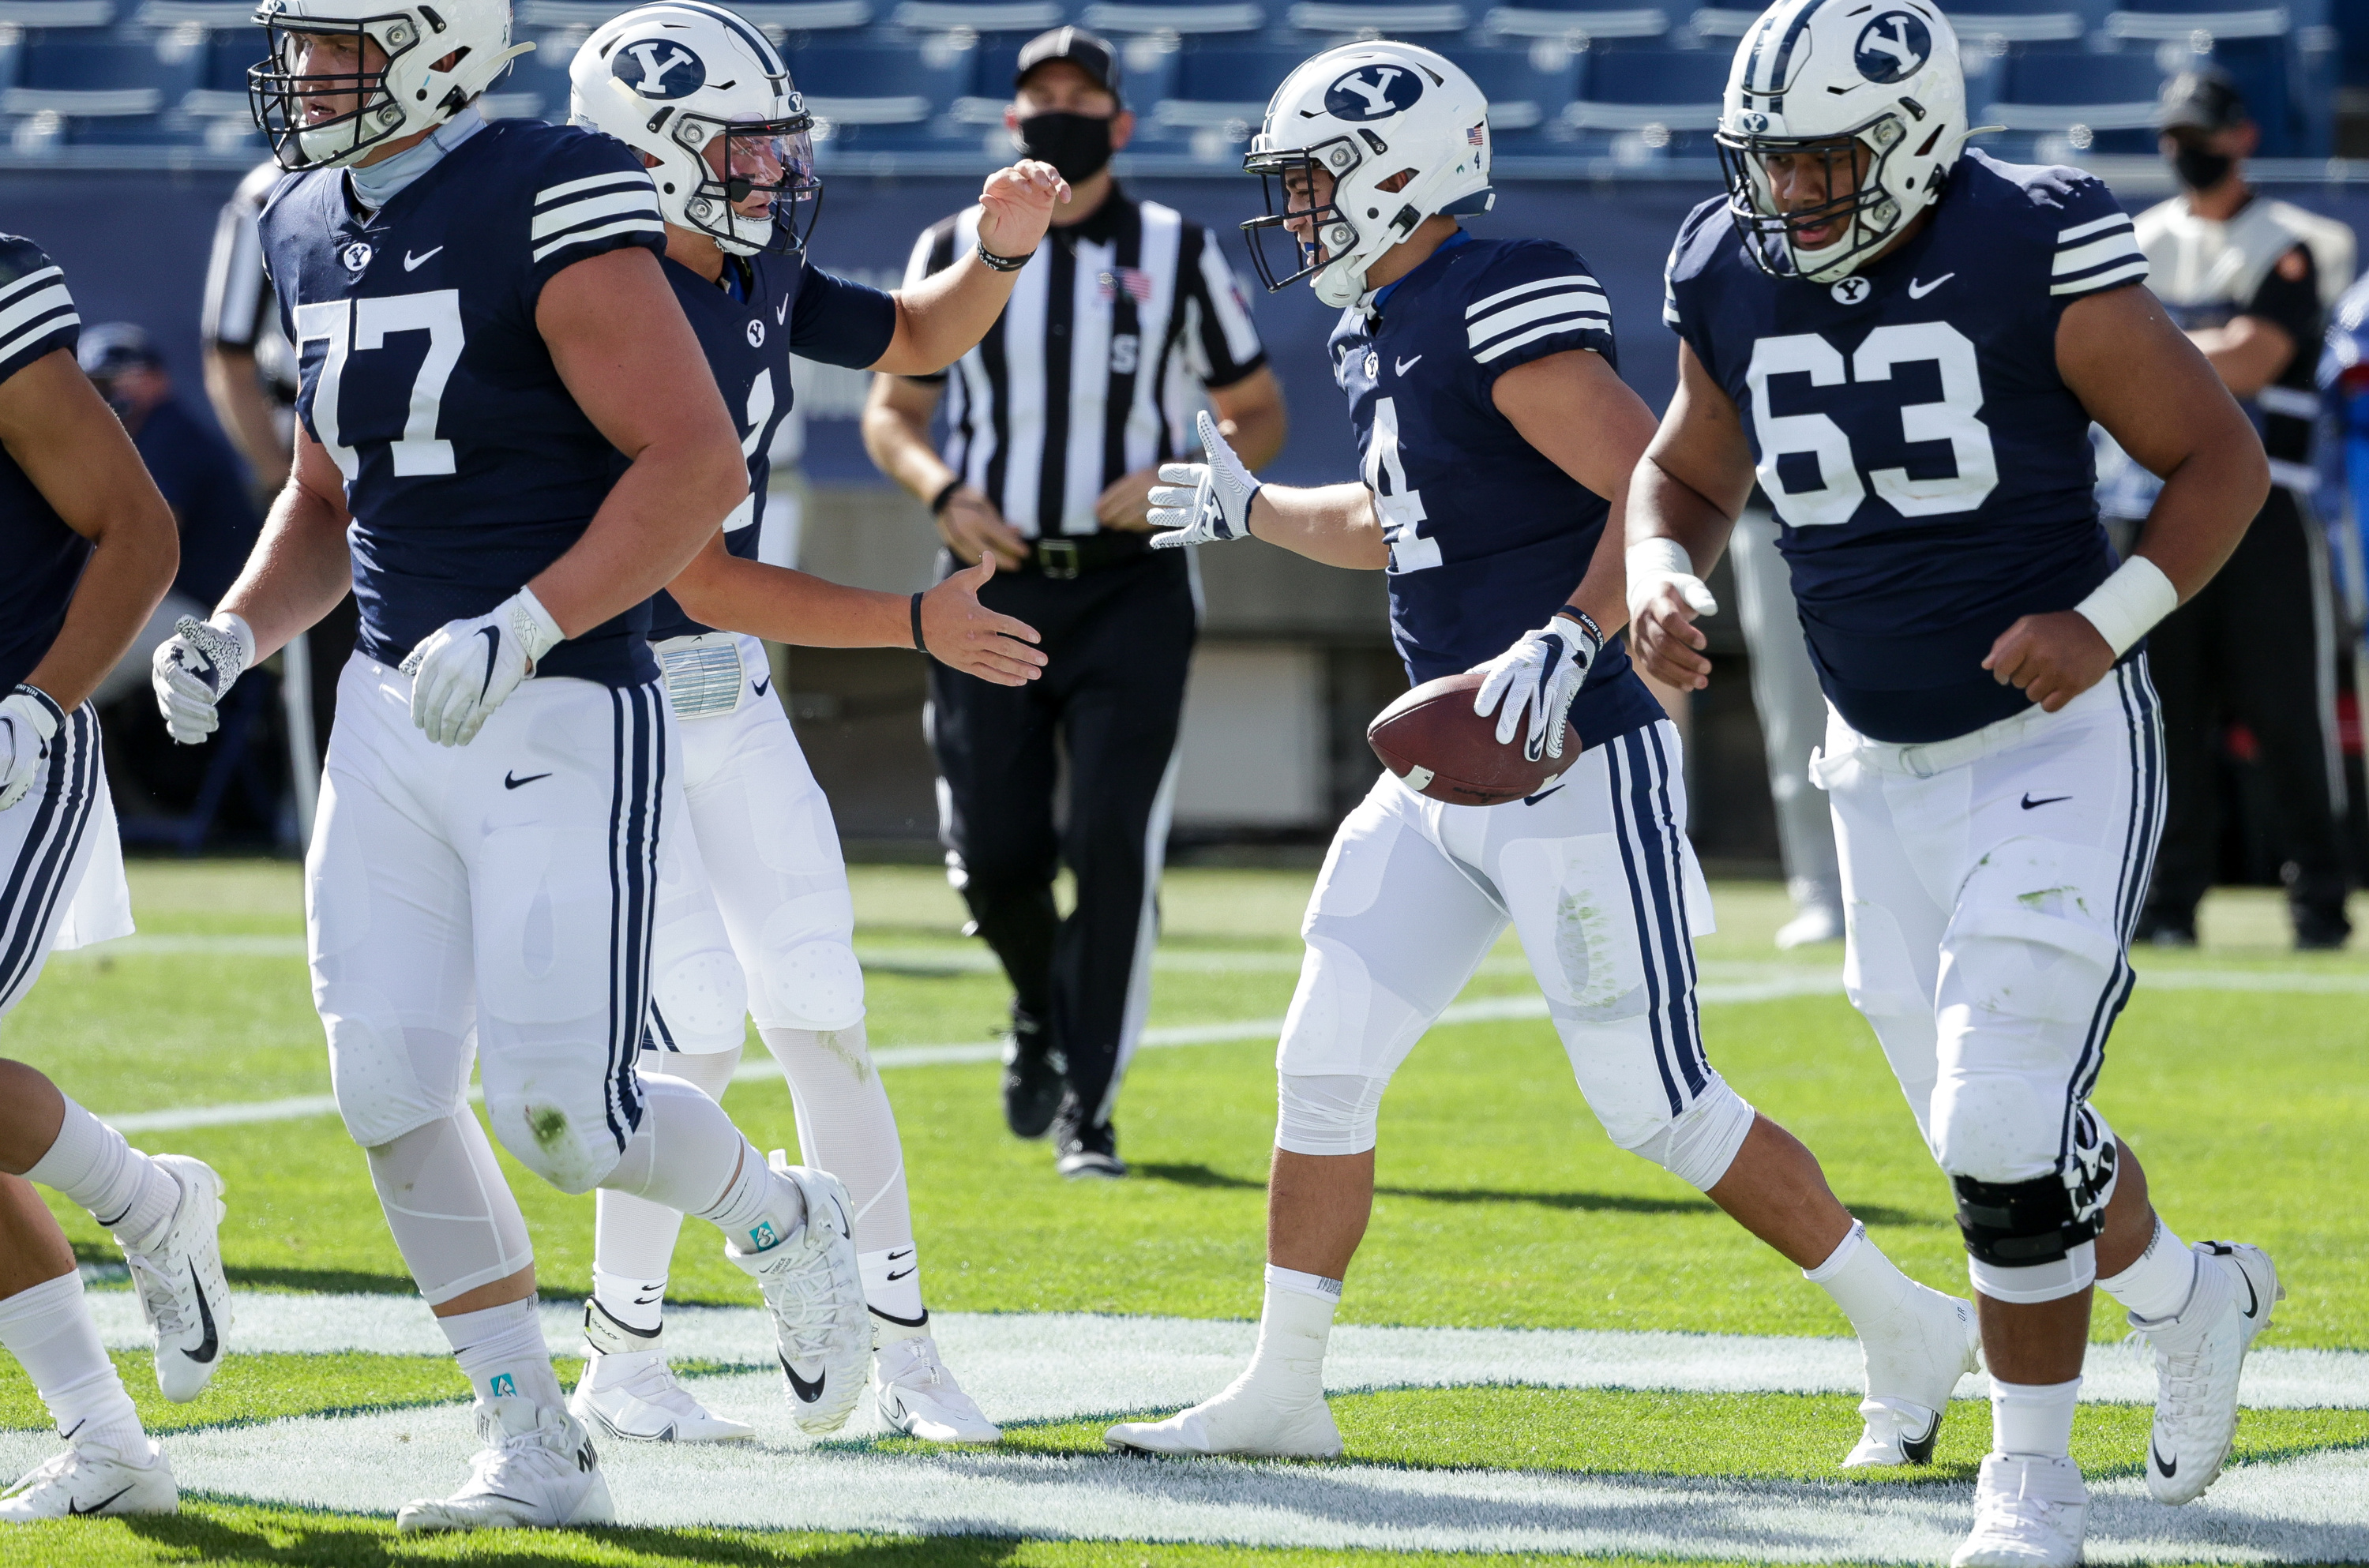 Brigham Young Cougars quarterback Zach Wilson (1) and running back Lopini Katoa (4) celebrate after Katoa caught the ball for a touchdown, giving the Cougars a 14-3 lead over the UTSA Roadrunners after the PAT, at LaVell Edwards Stadium in Provo on Saturday, Oct. 10, 2020.